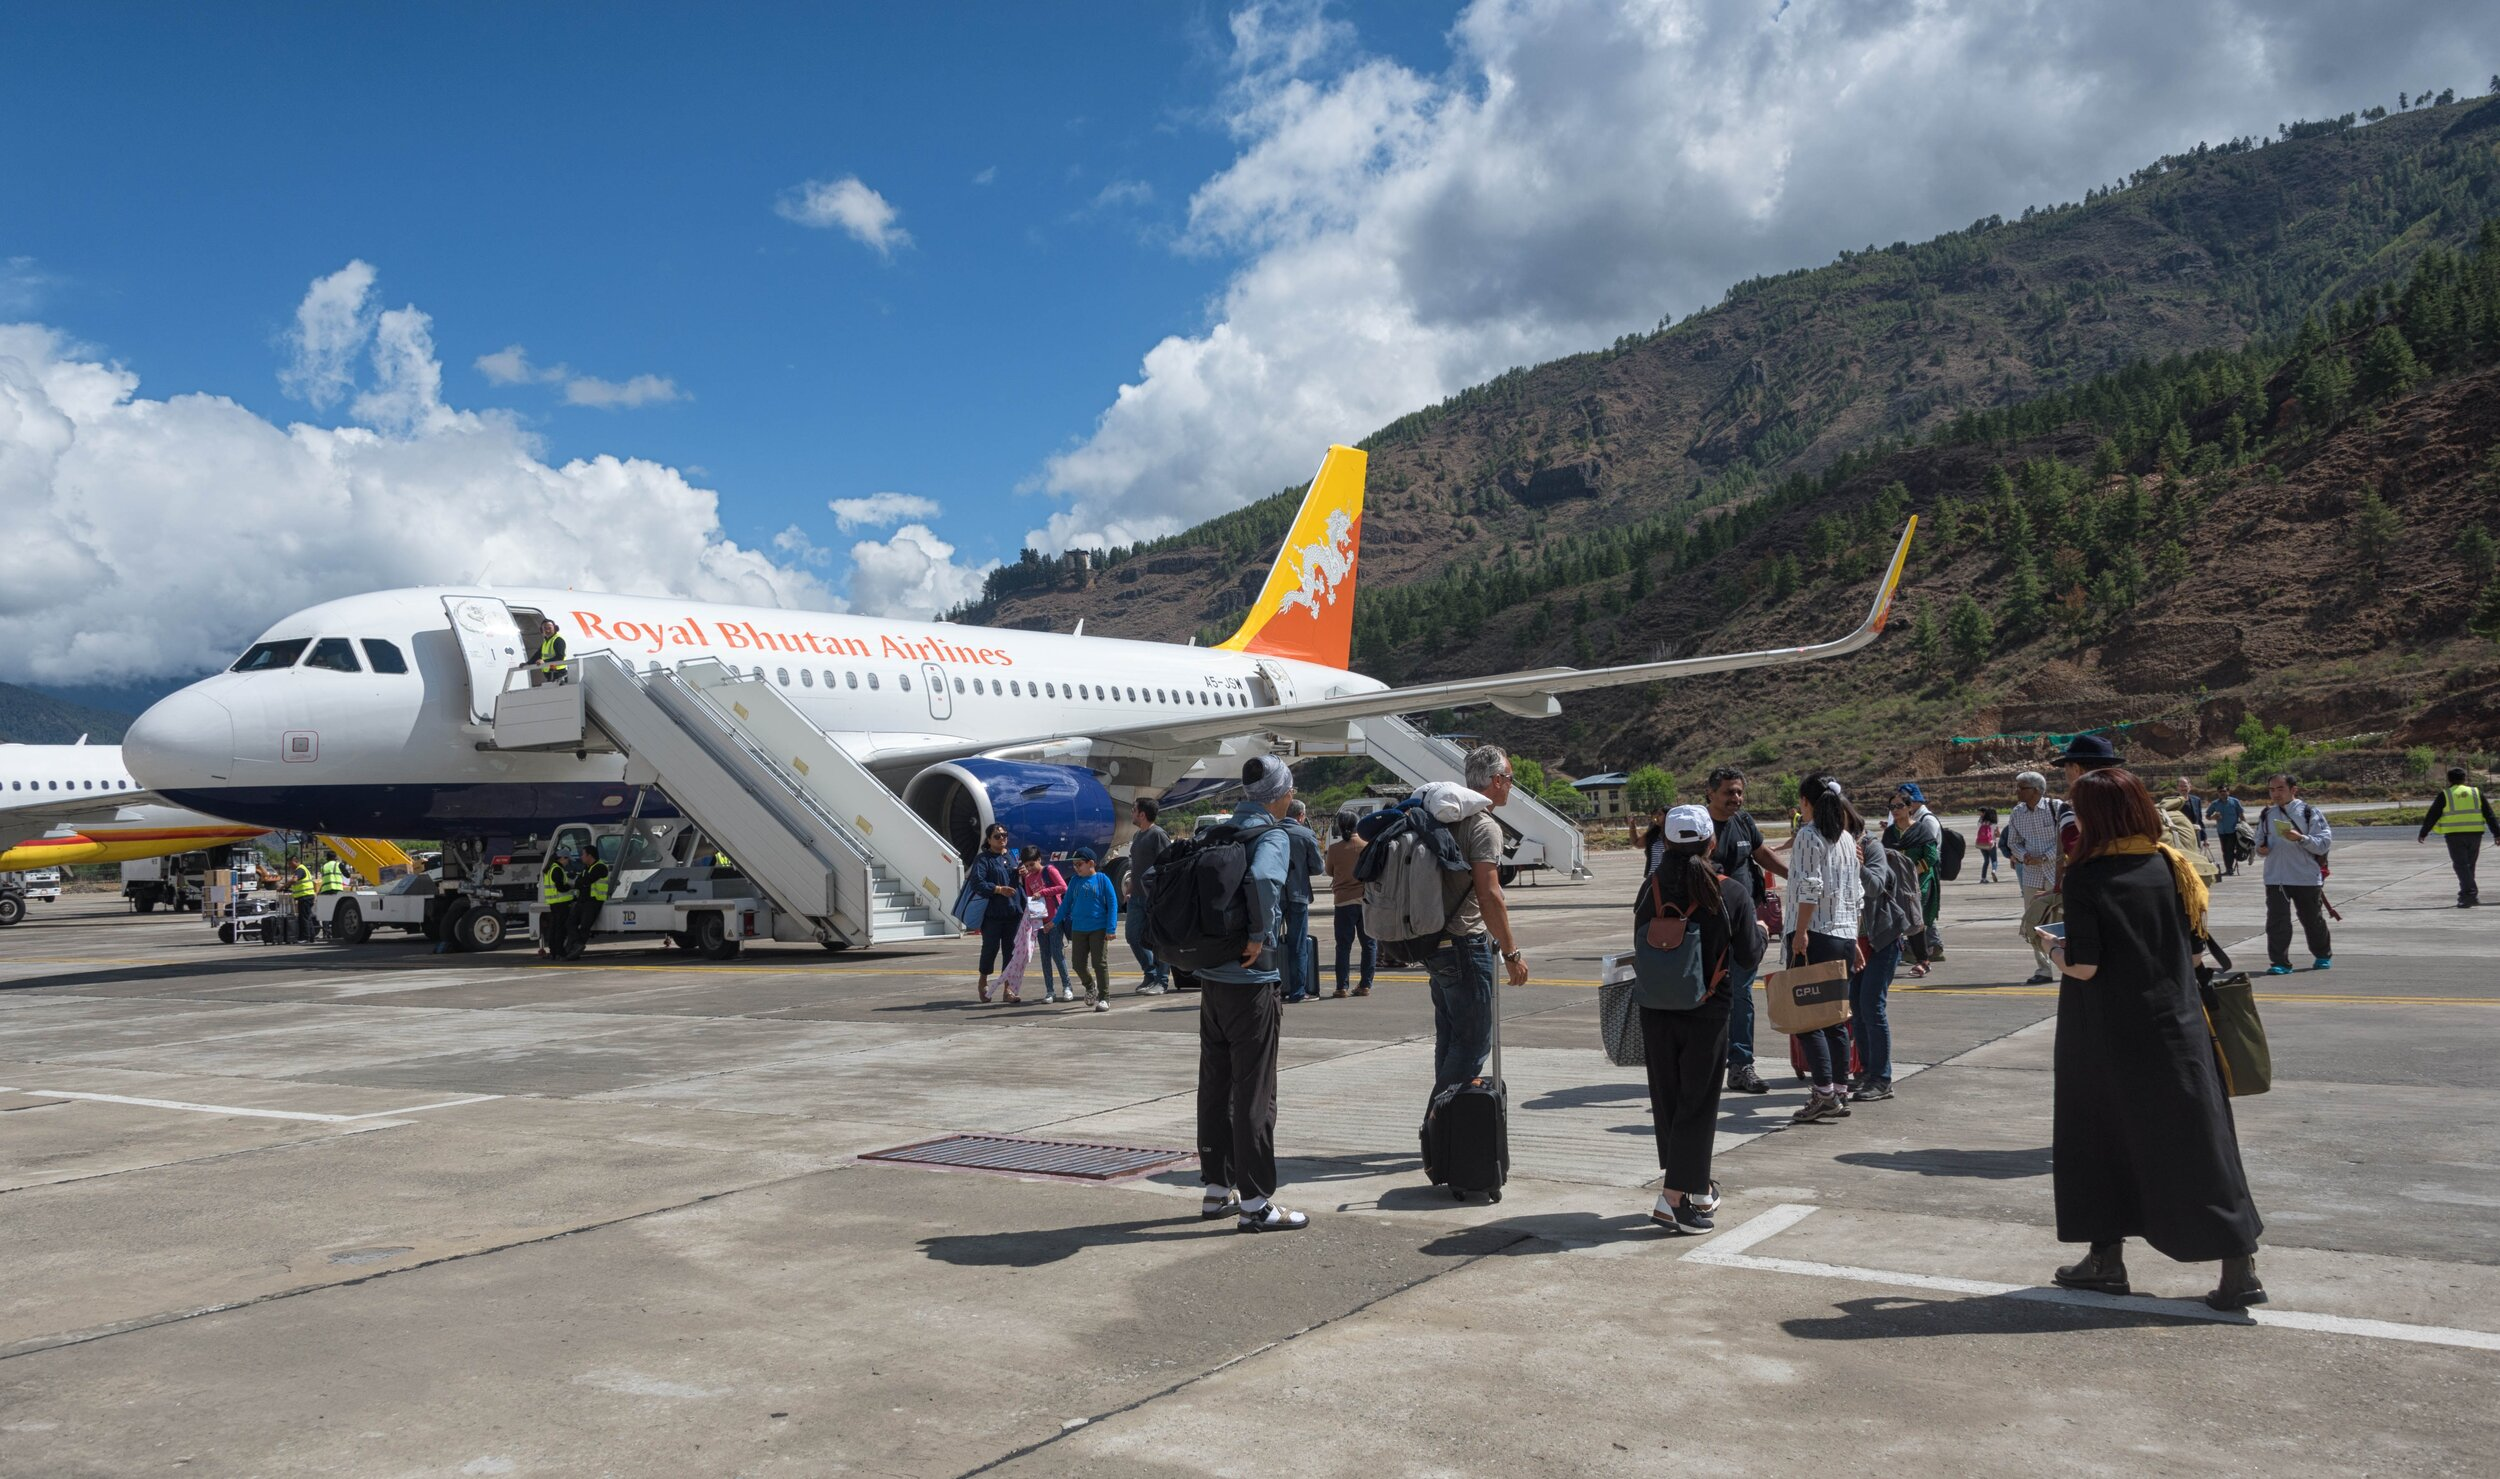 Travelers standing on the runway in awe of their surroundings after landing (PC: MyBhutan's DeSantis)